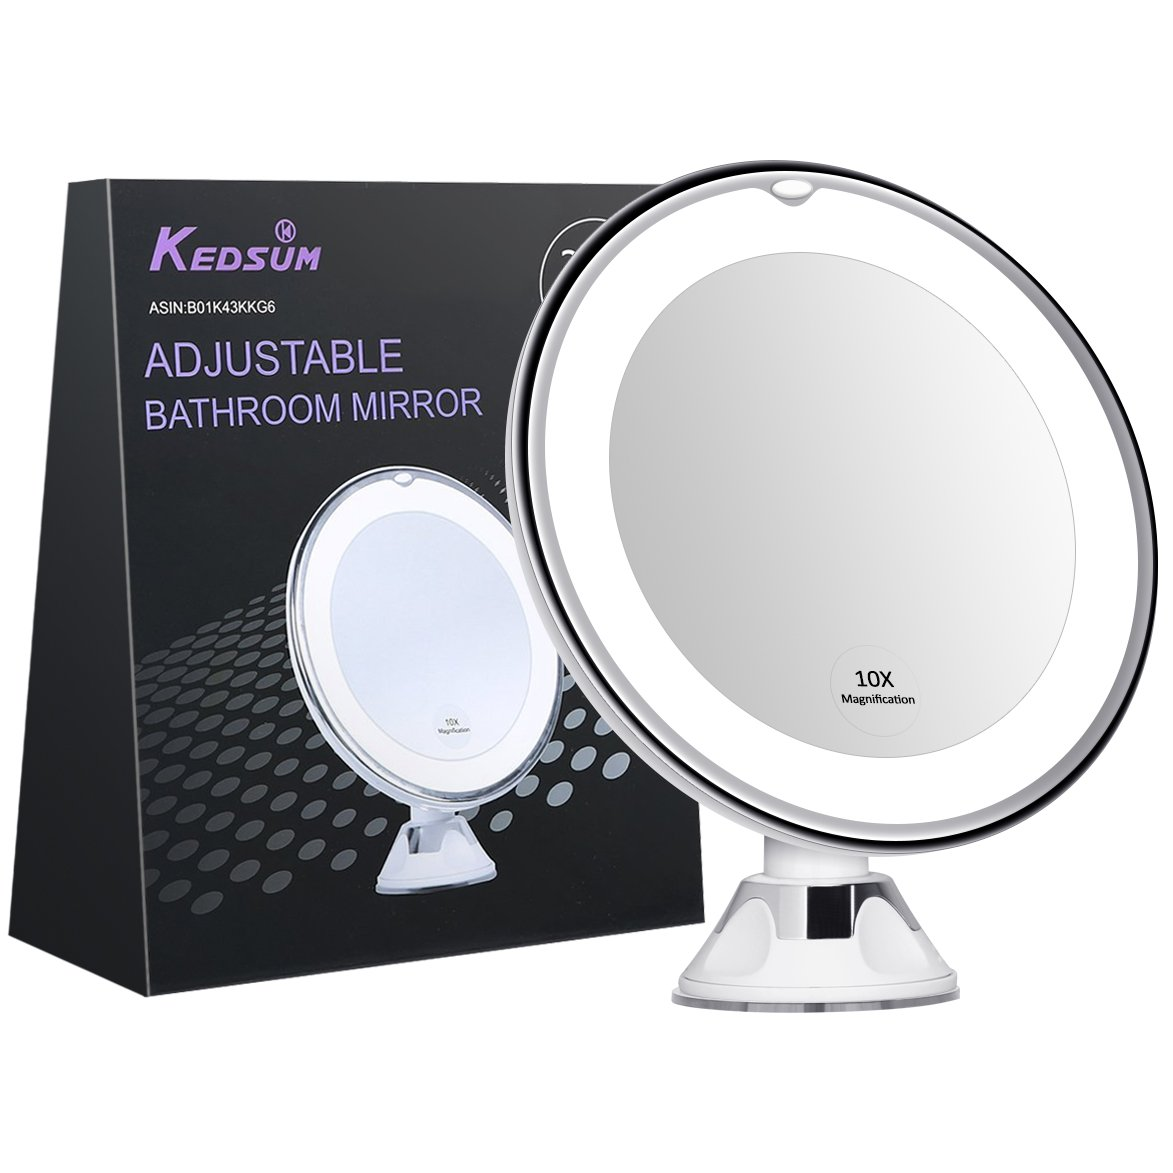 "KEDSUM 6.8"" 10x Magnifying LED Lighted Makeup Mirror,Bathroom Vanity Mirror with Strong Suction Cup,Rotates 360 Degrees,Daylight Color,Battery Operated"